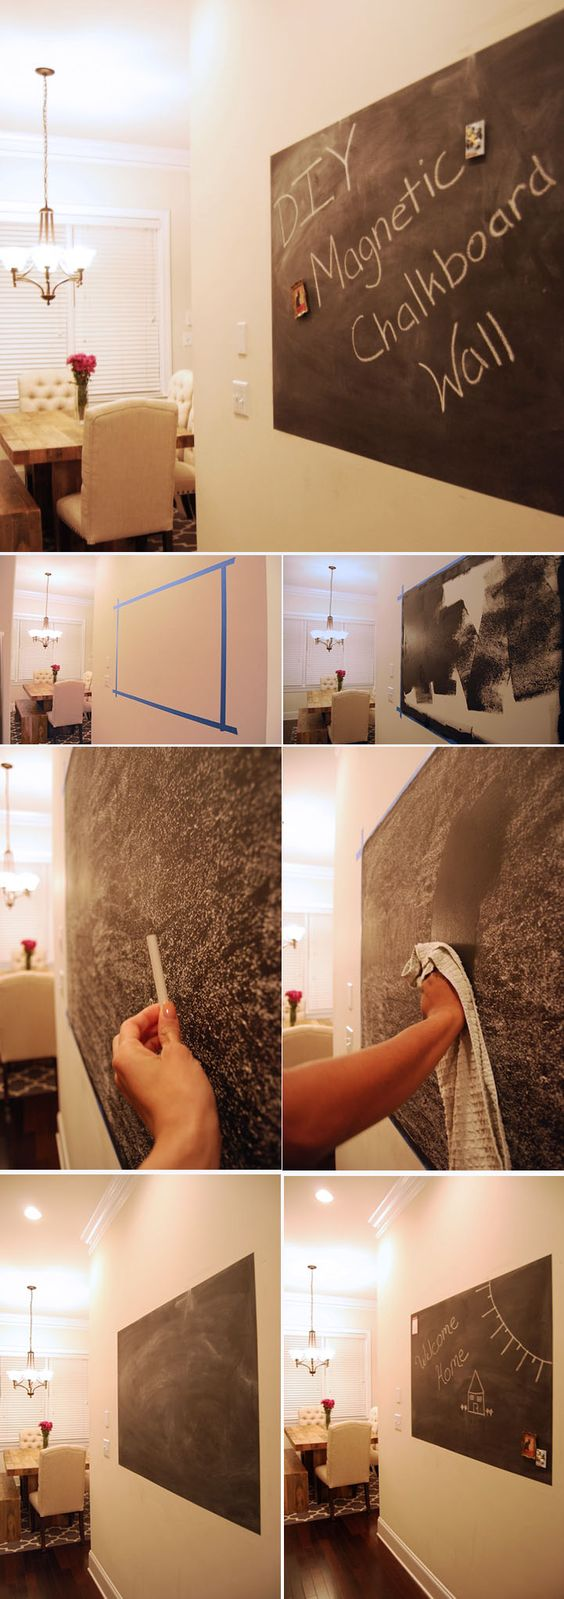 DIY Magnetic Chalkboard Wall   The Home Depot Community